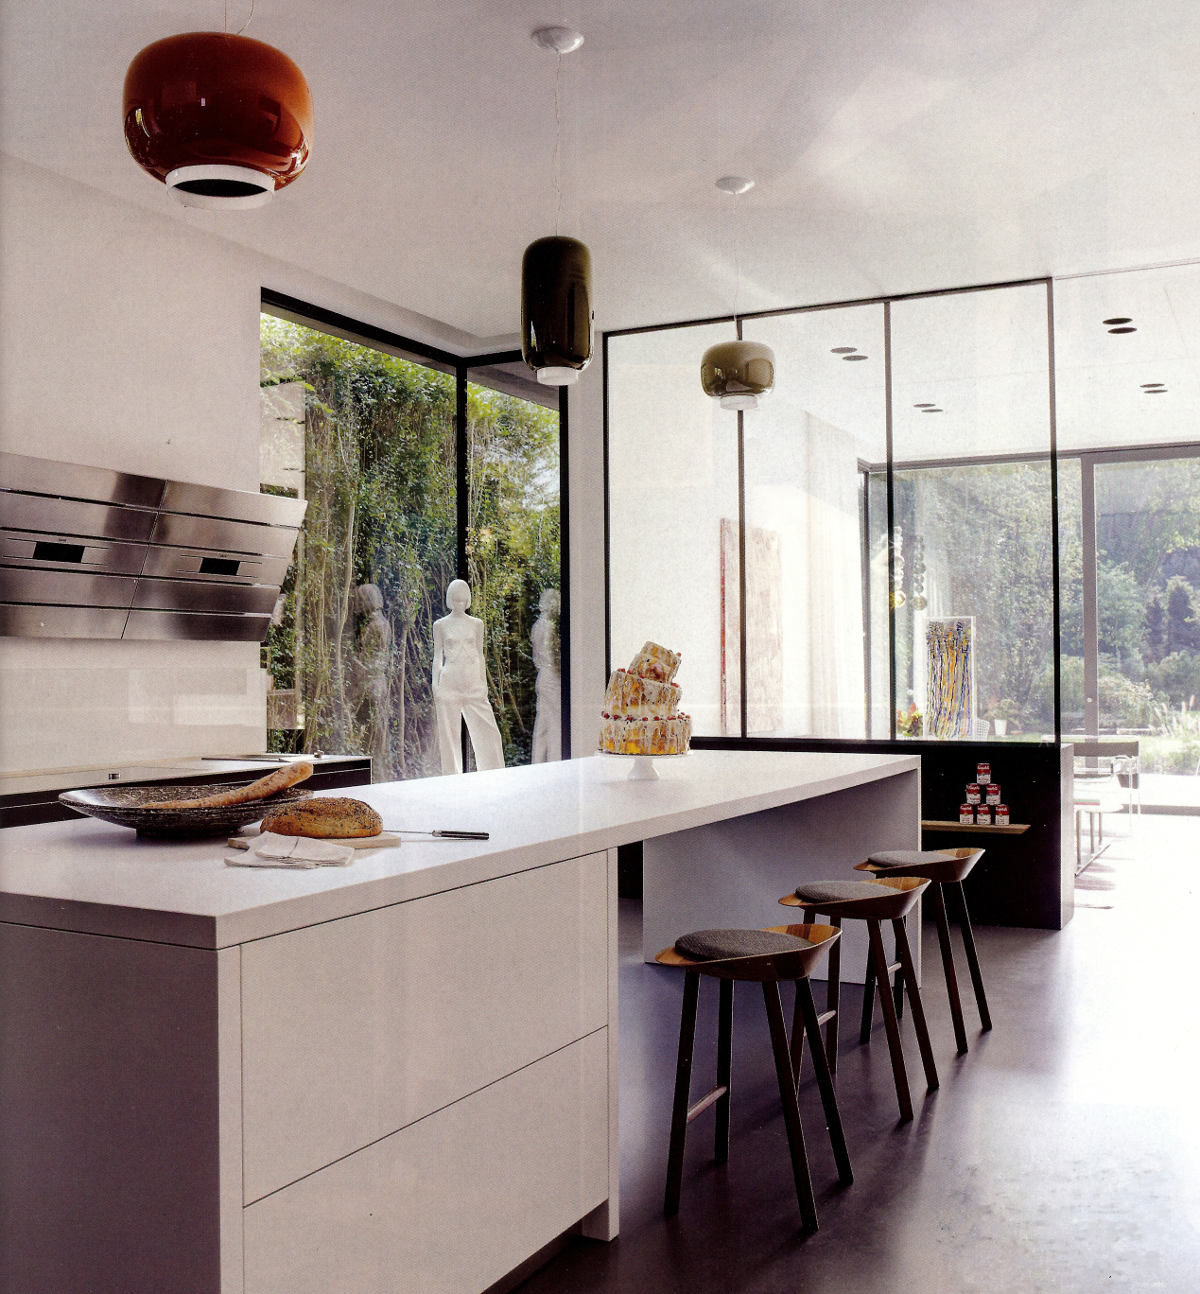 high tech vent hood - modernist kitchen with AEG vertical vent hood - Elledecor via Atticmag